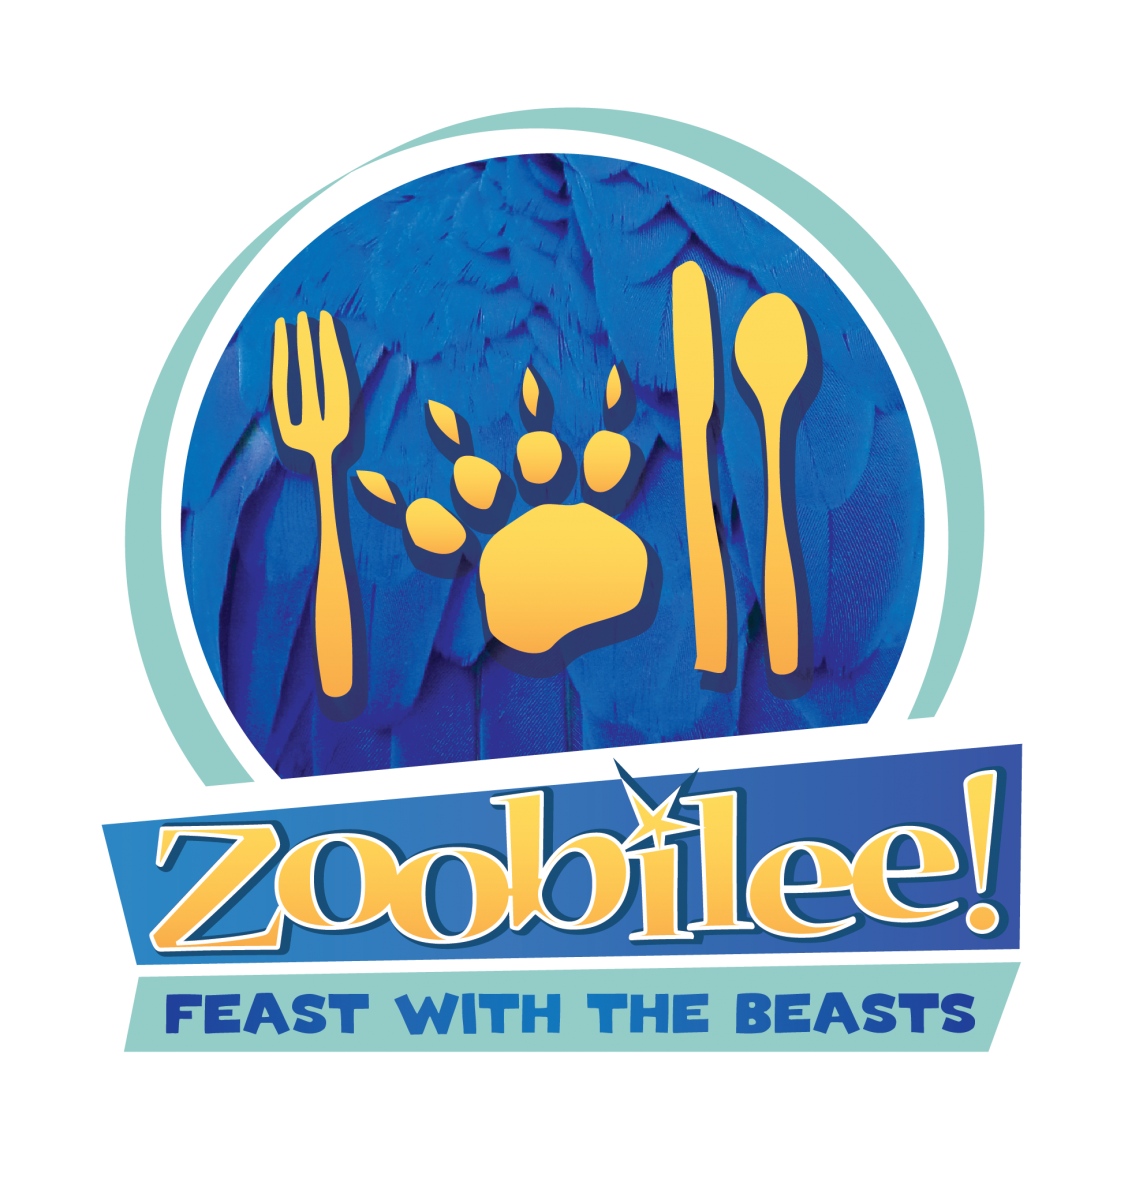 Roger williams zoo logo clipart svg transparent library Zoobilee! Feast with the Beasts | Roger Williams Park Zoo svg transparent library